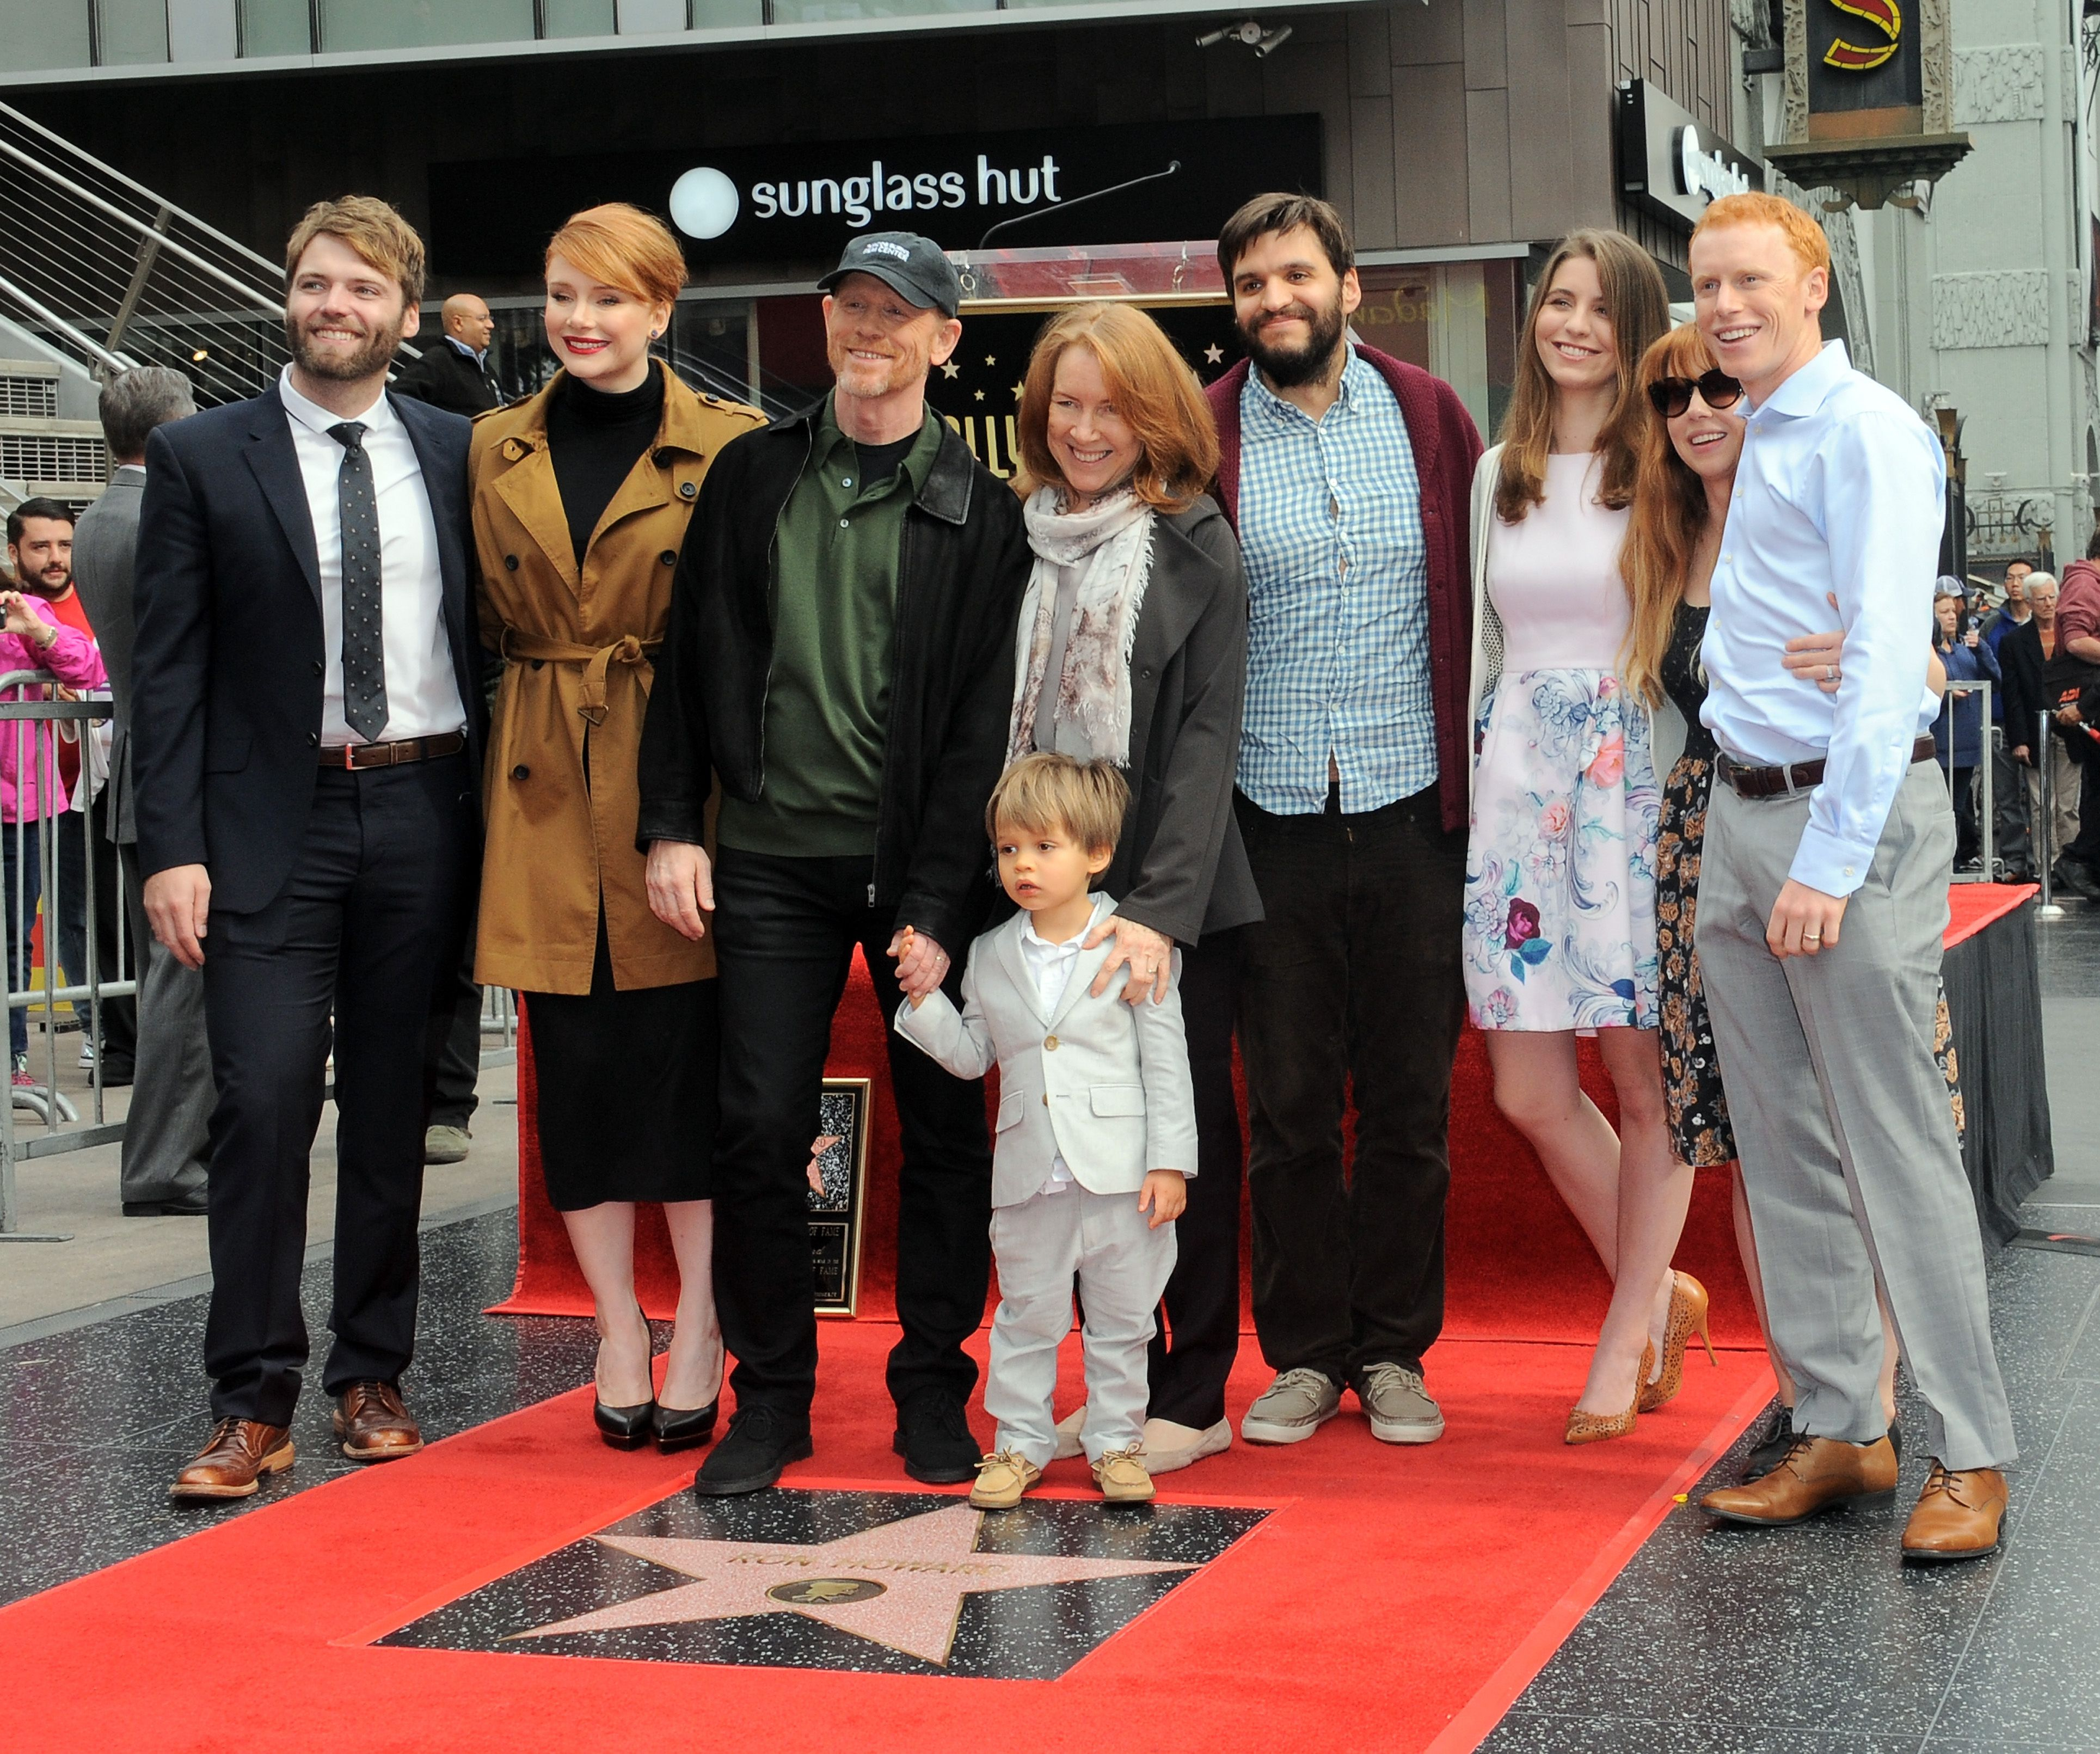 Ron Howard and Cheryl Howard with their family at the Ron Howard Star ceremony on The Hollywood Walk Of Fame held on December 10, 2015 in Hollywood, California. | Photo: Getty Images.